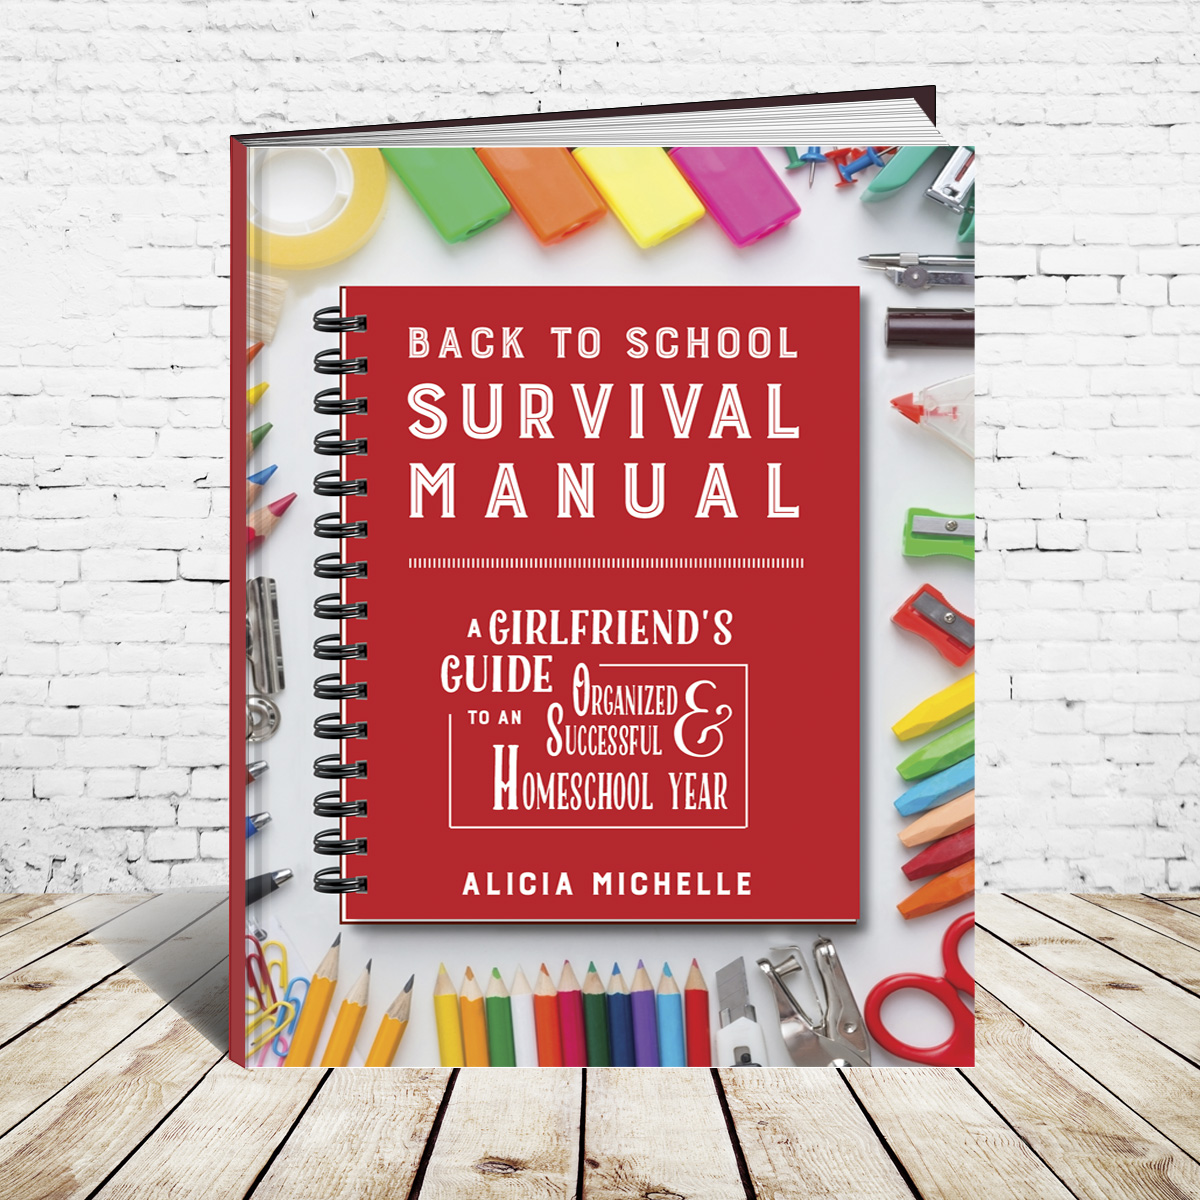 No matter if it's your first or your fourteenth year as a homeschooler, preparing for a new school year can be daunting and overwhelming. What do you do first? Where do you start? That's why the Back to School Survival Manual: A Girlfriend's Guide to an Organized & Successful Homeschool Year is such an amazing resource. Full of expert advice from a ten-year homeschool veteran, this casual, conversational book is like chatting with a girlfriend about how to: build self-confidence in your homeschool's purpose and vision determine what supplies you have (and what you really need); learn practical tips for managing daily homeschool chaos and clutter; discover how to create a realistic learning rhythm; and get powerful tips for daily homeschool success. The book also contains 30 pages of reproducible 8.5 x 11-inch checklists, charts and planning activities to use year-after-year!